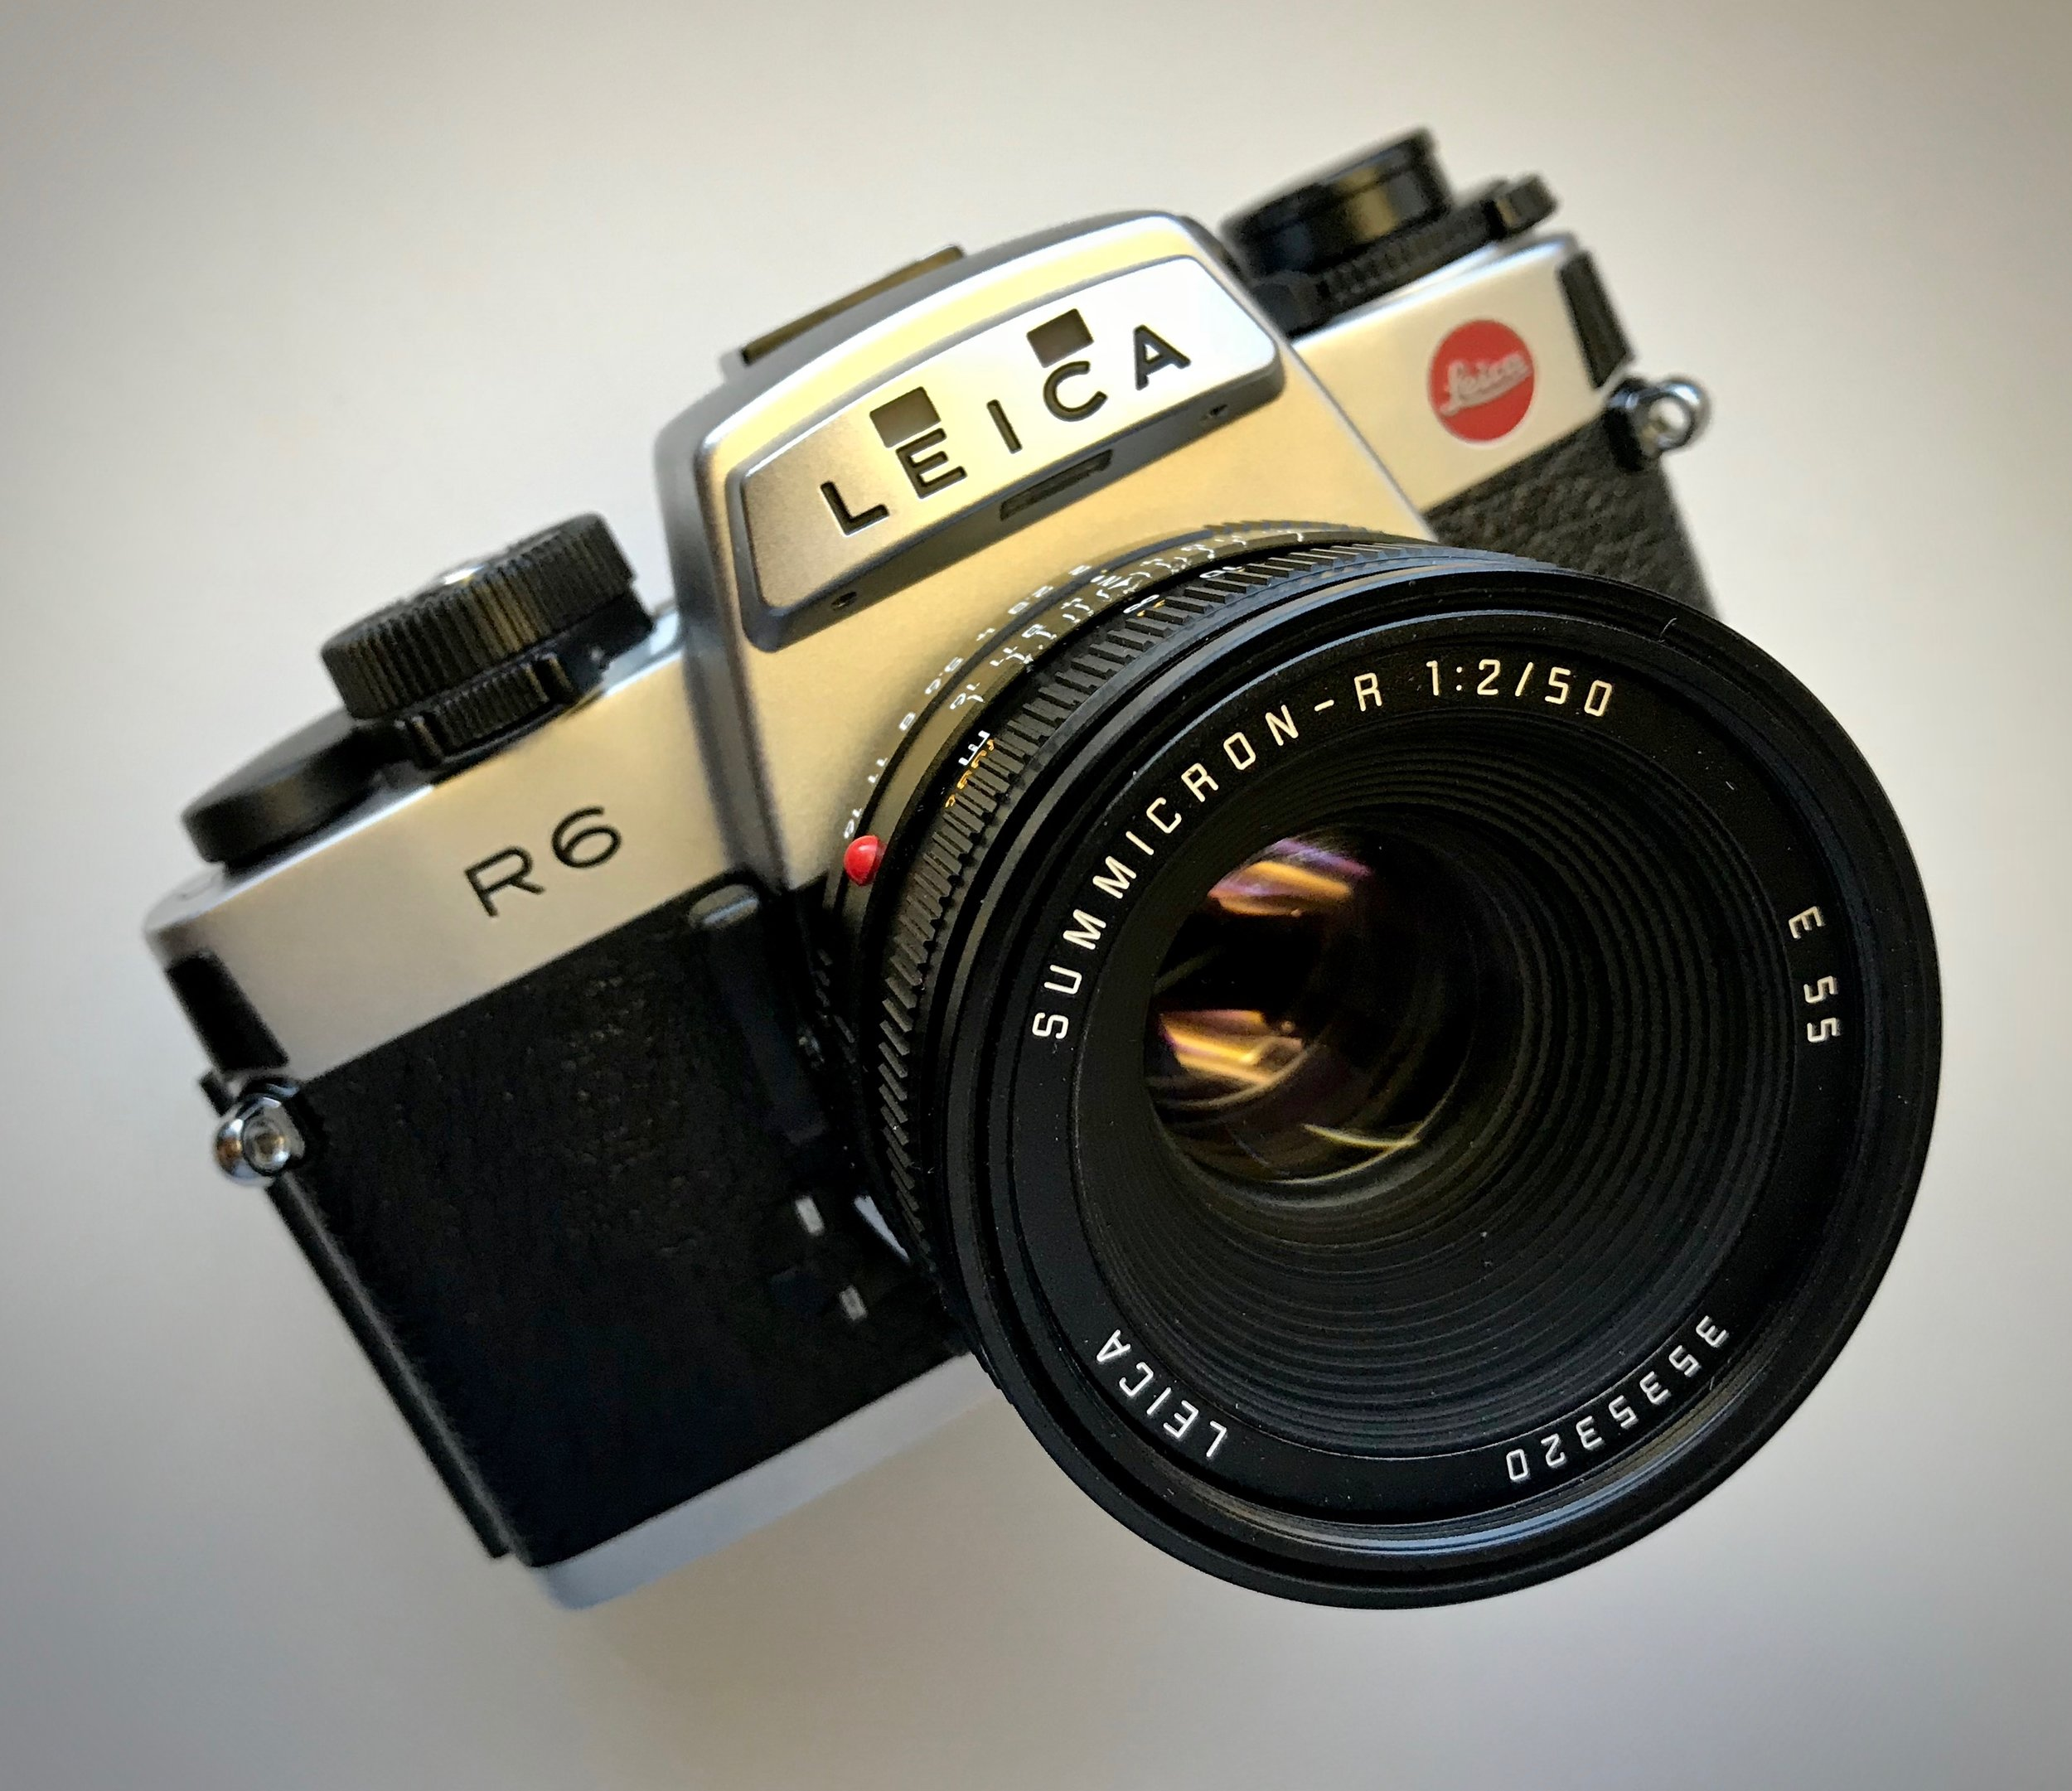 Leica R6 - Yes, Leica made SLR cameras too! The R6 and R6.2 were the only full mechanical ones though—think of the R6 as the big brother to the Leica M6TTL. The R system is a very affordable way to try Leica glass